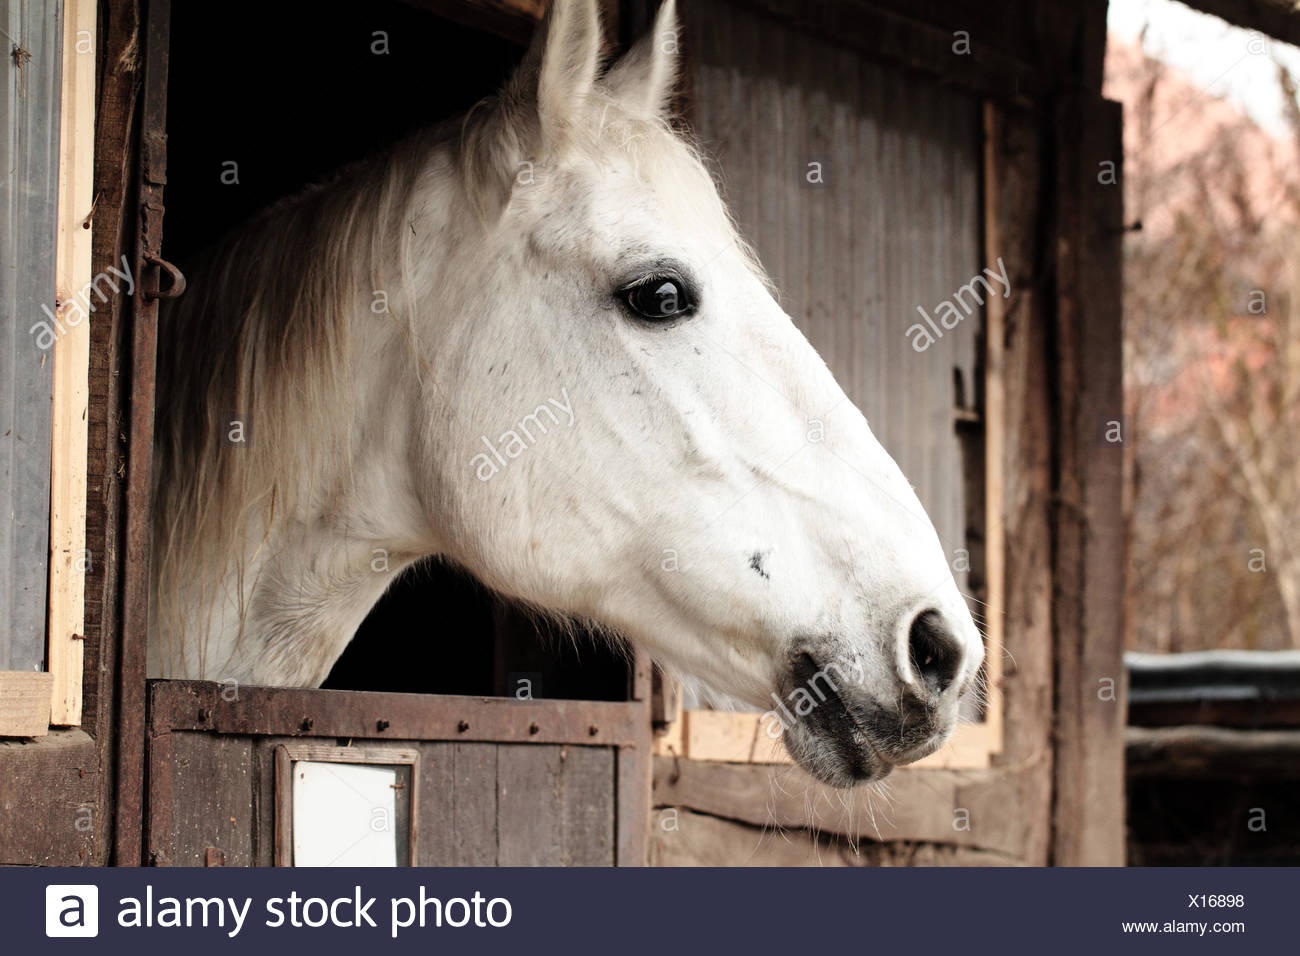 White Horse In The Stable Horse Portrait Stock Photo Alamy